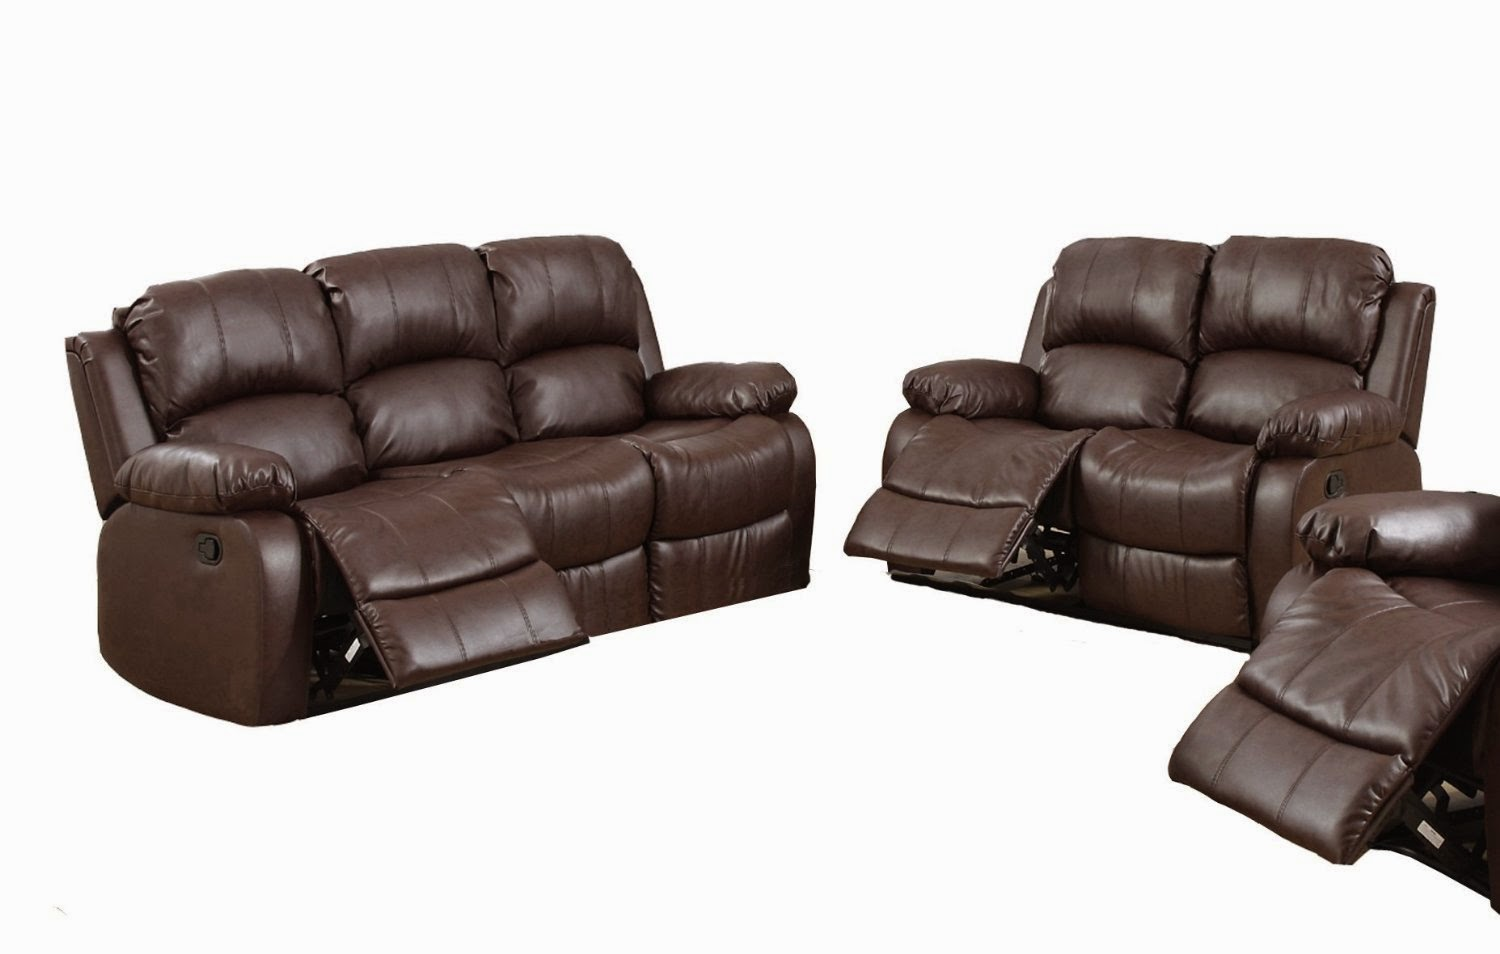 Cheap reclining sofa and loveseat sets april 2015 for Leather sofa and loveseat set